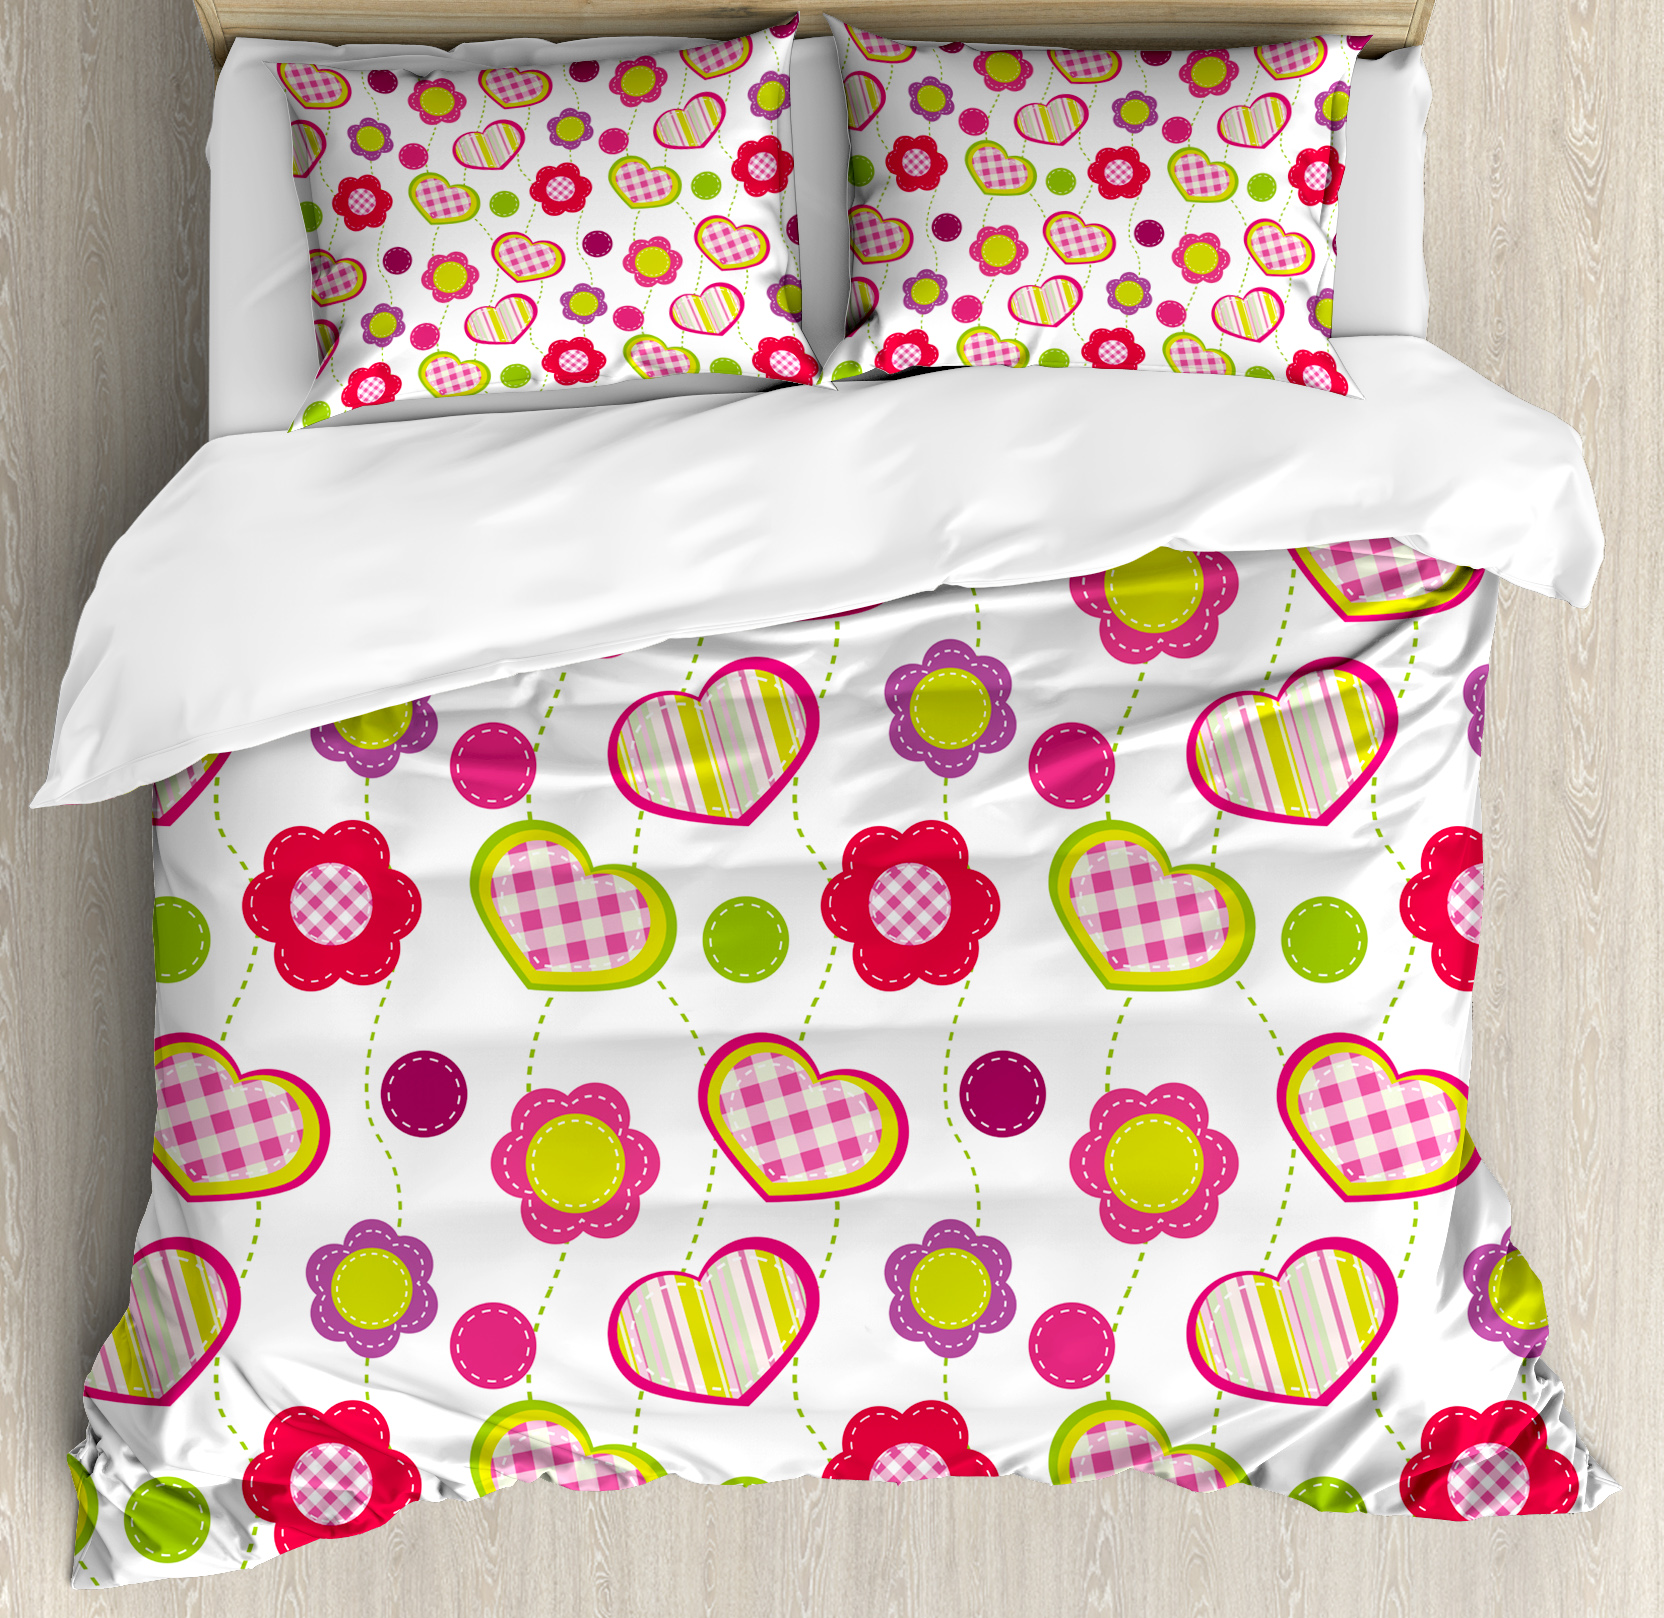 Kids Duvet Cover Set, Patchwork Inspired Design Colorful Patterned Flowers Hearts and Dots Retro Girlish, Decorative Bedding Set with Pillow Shams, Multicolor, by Ambesonne